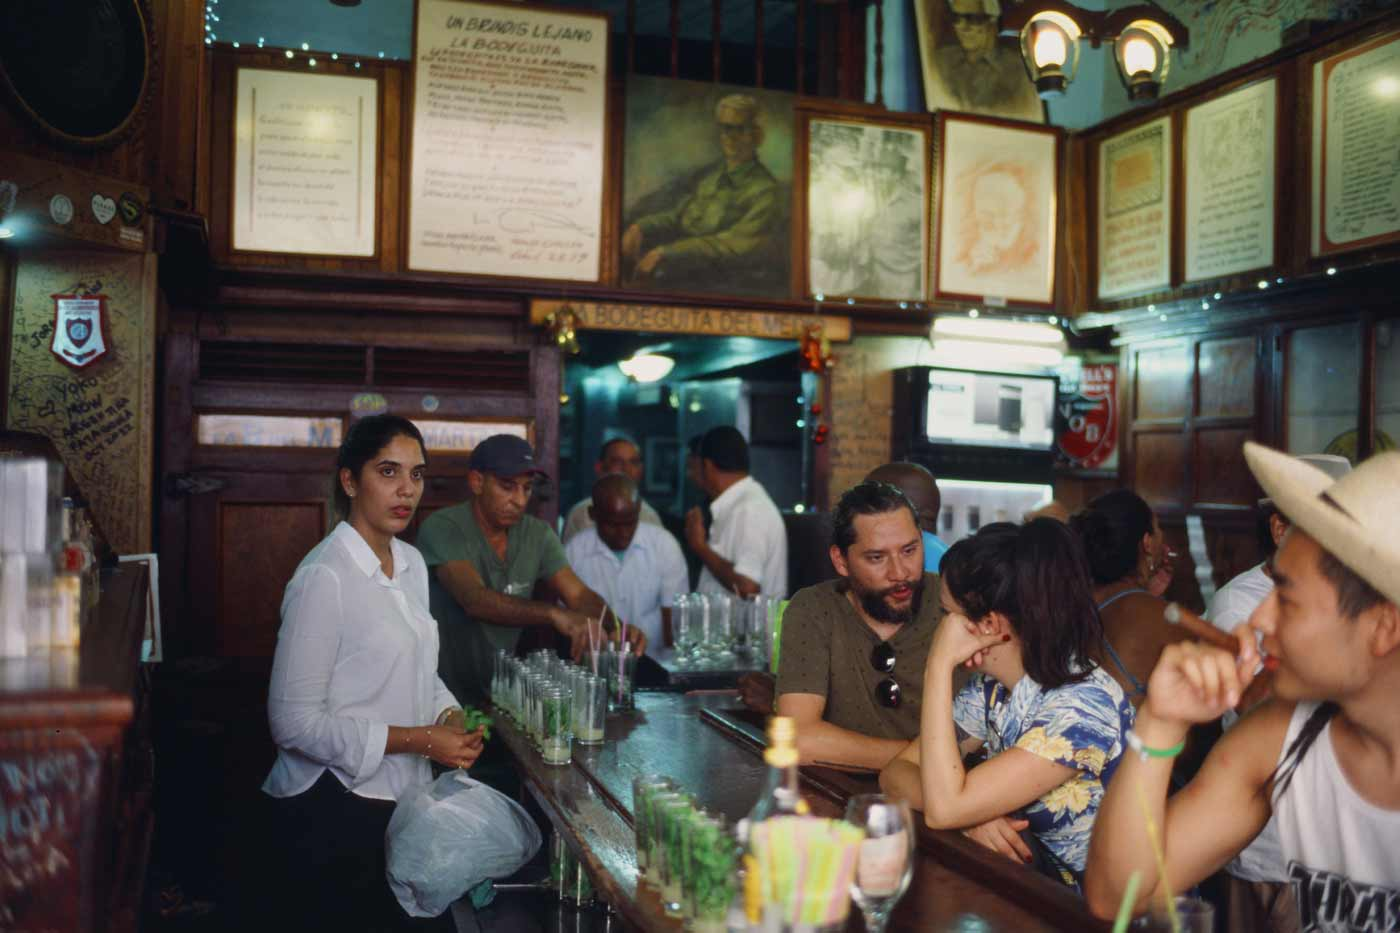 35mm-focal-length-guide-tips-beginner-documentary-story-telling-zone-focus-field-view-perspective-compression-angle-summilux-cuba-havana-film-photography-mojito